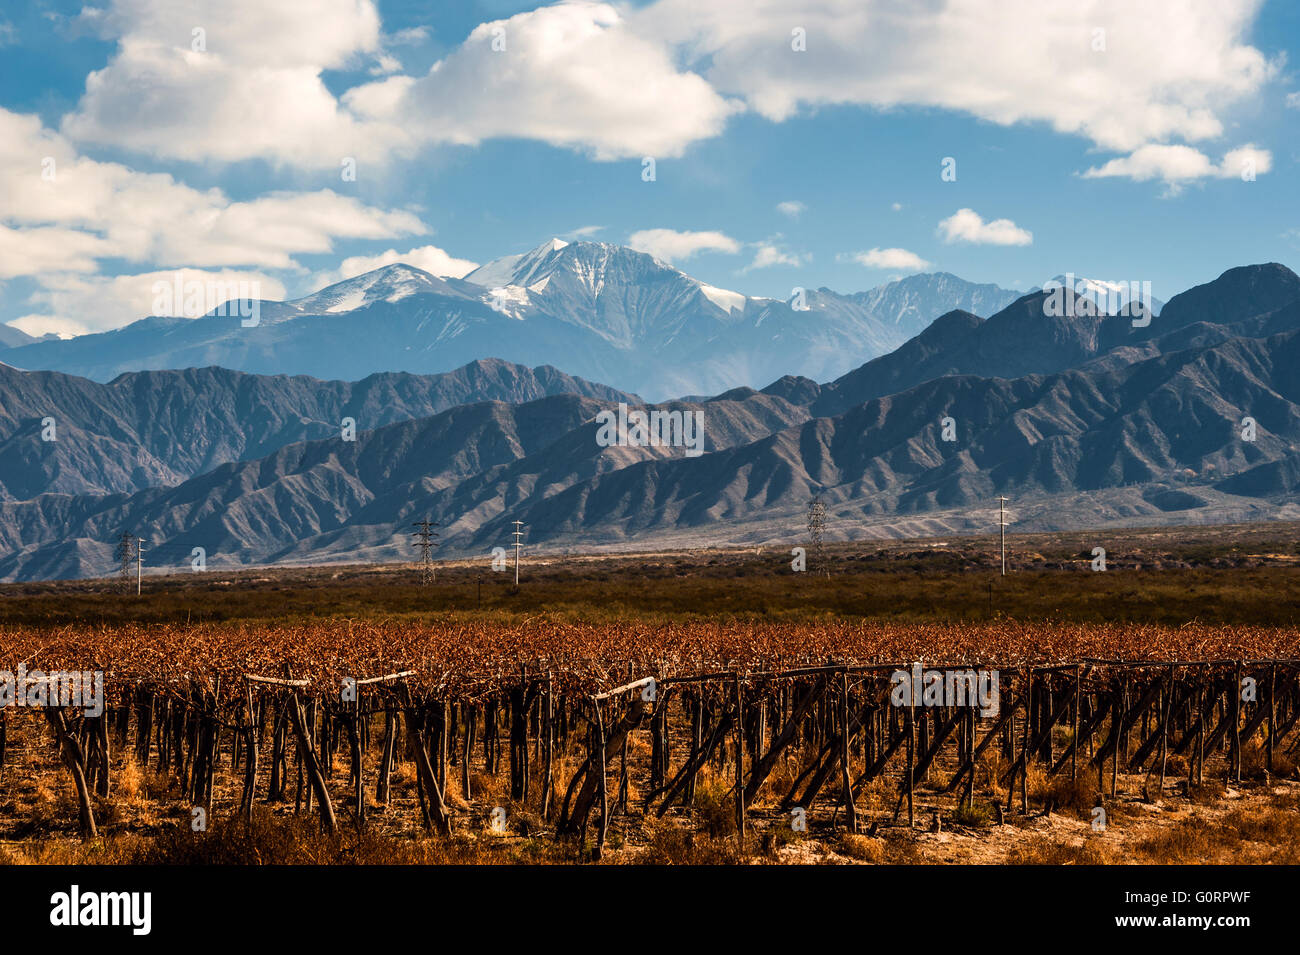 Volcano Aconcagua and Vineyard, Argentine province of Mendoza - Stock Image